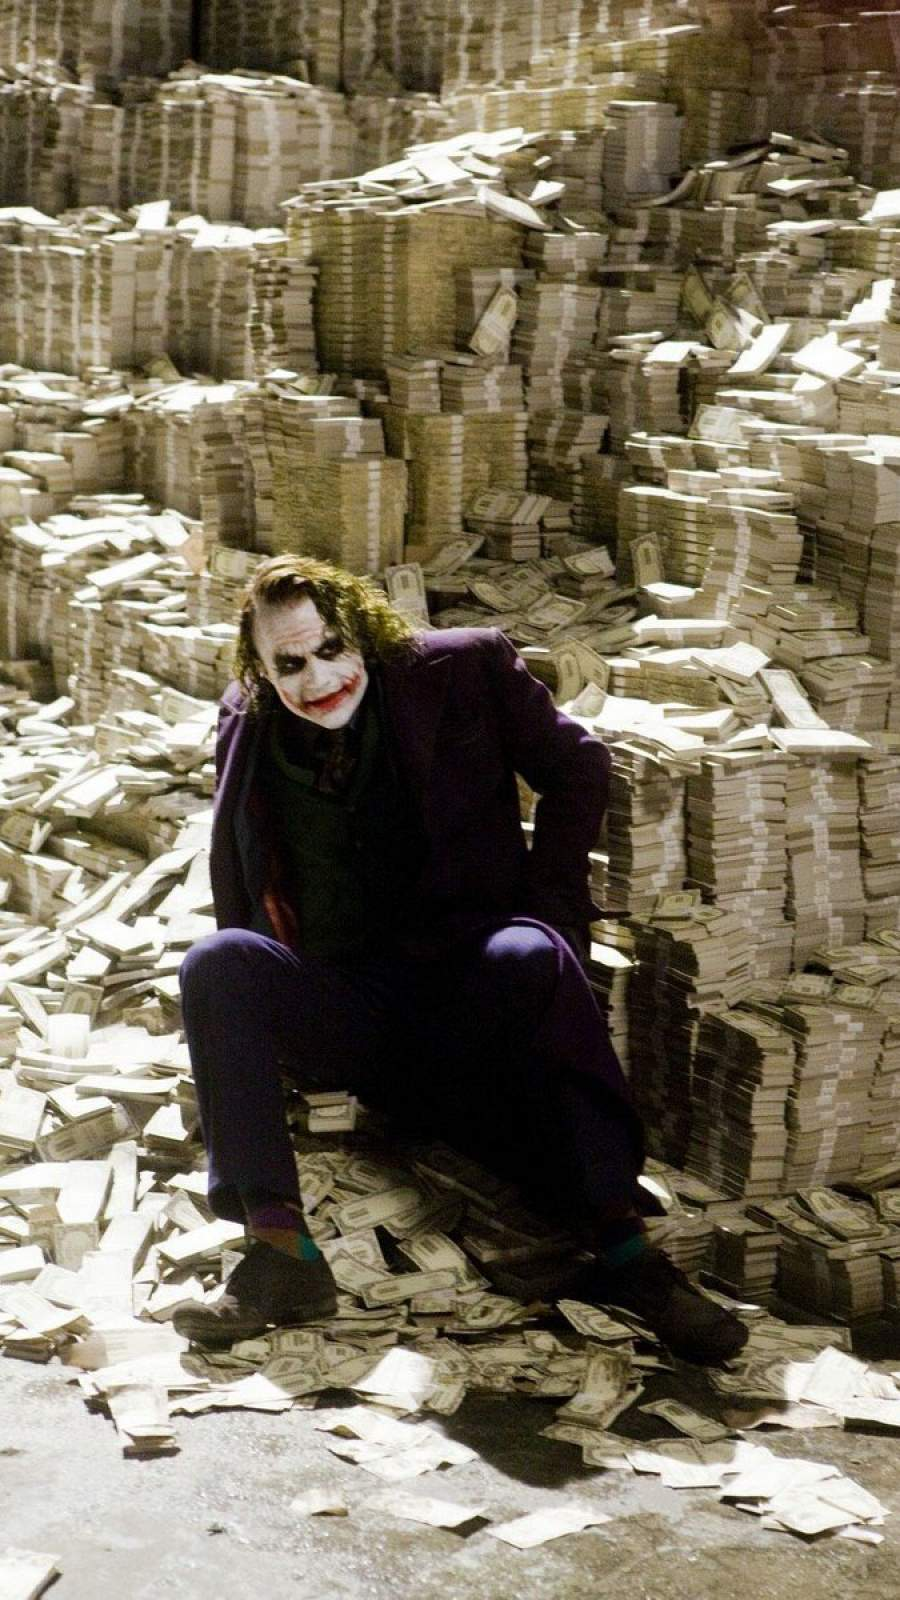 Joker its Not About Money its About Sending a Message